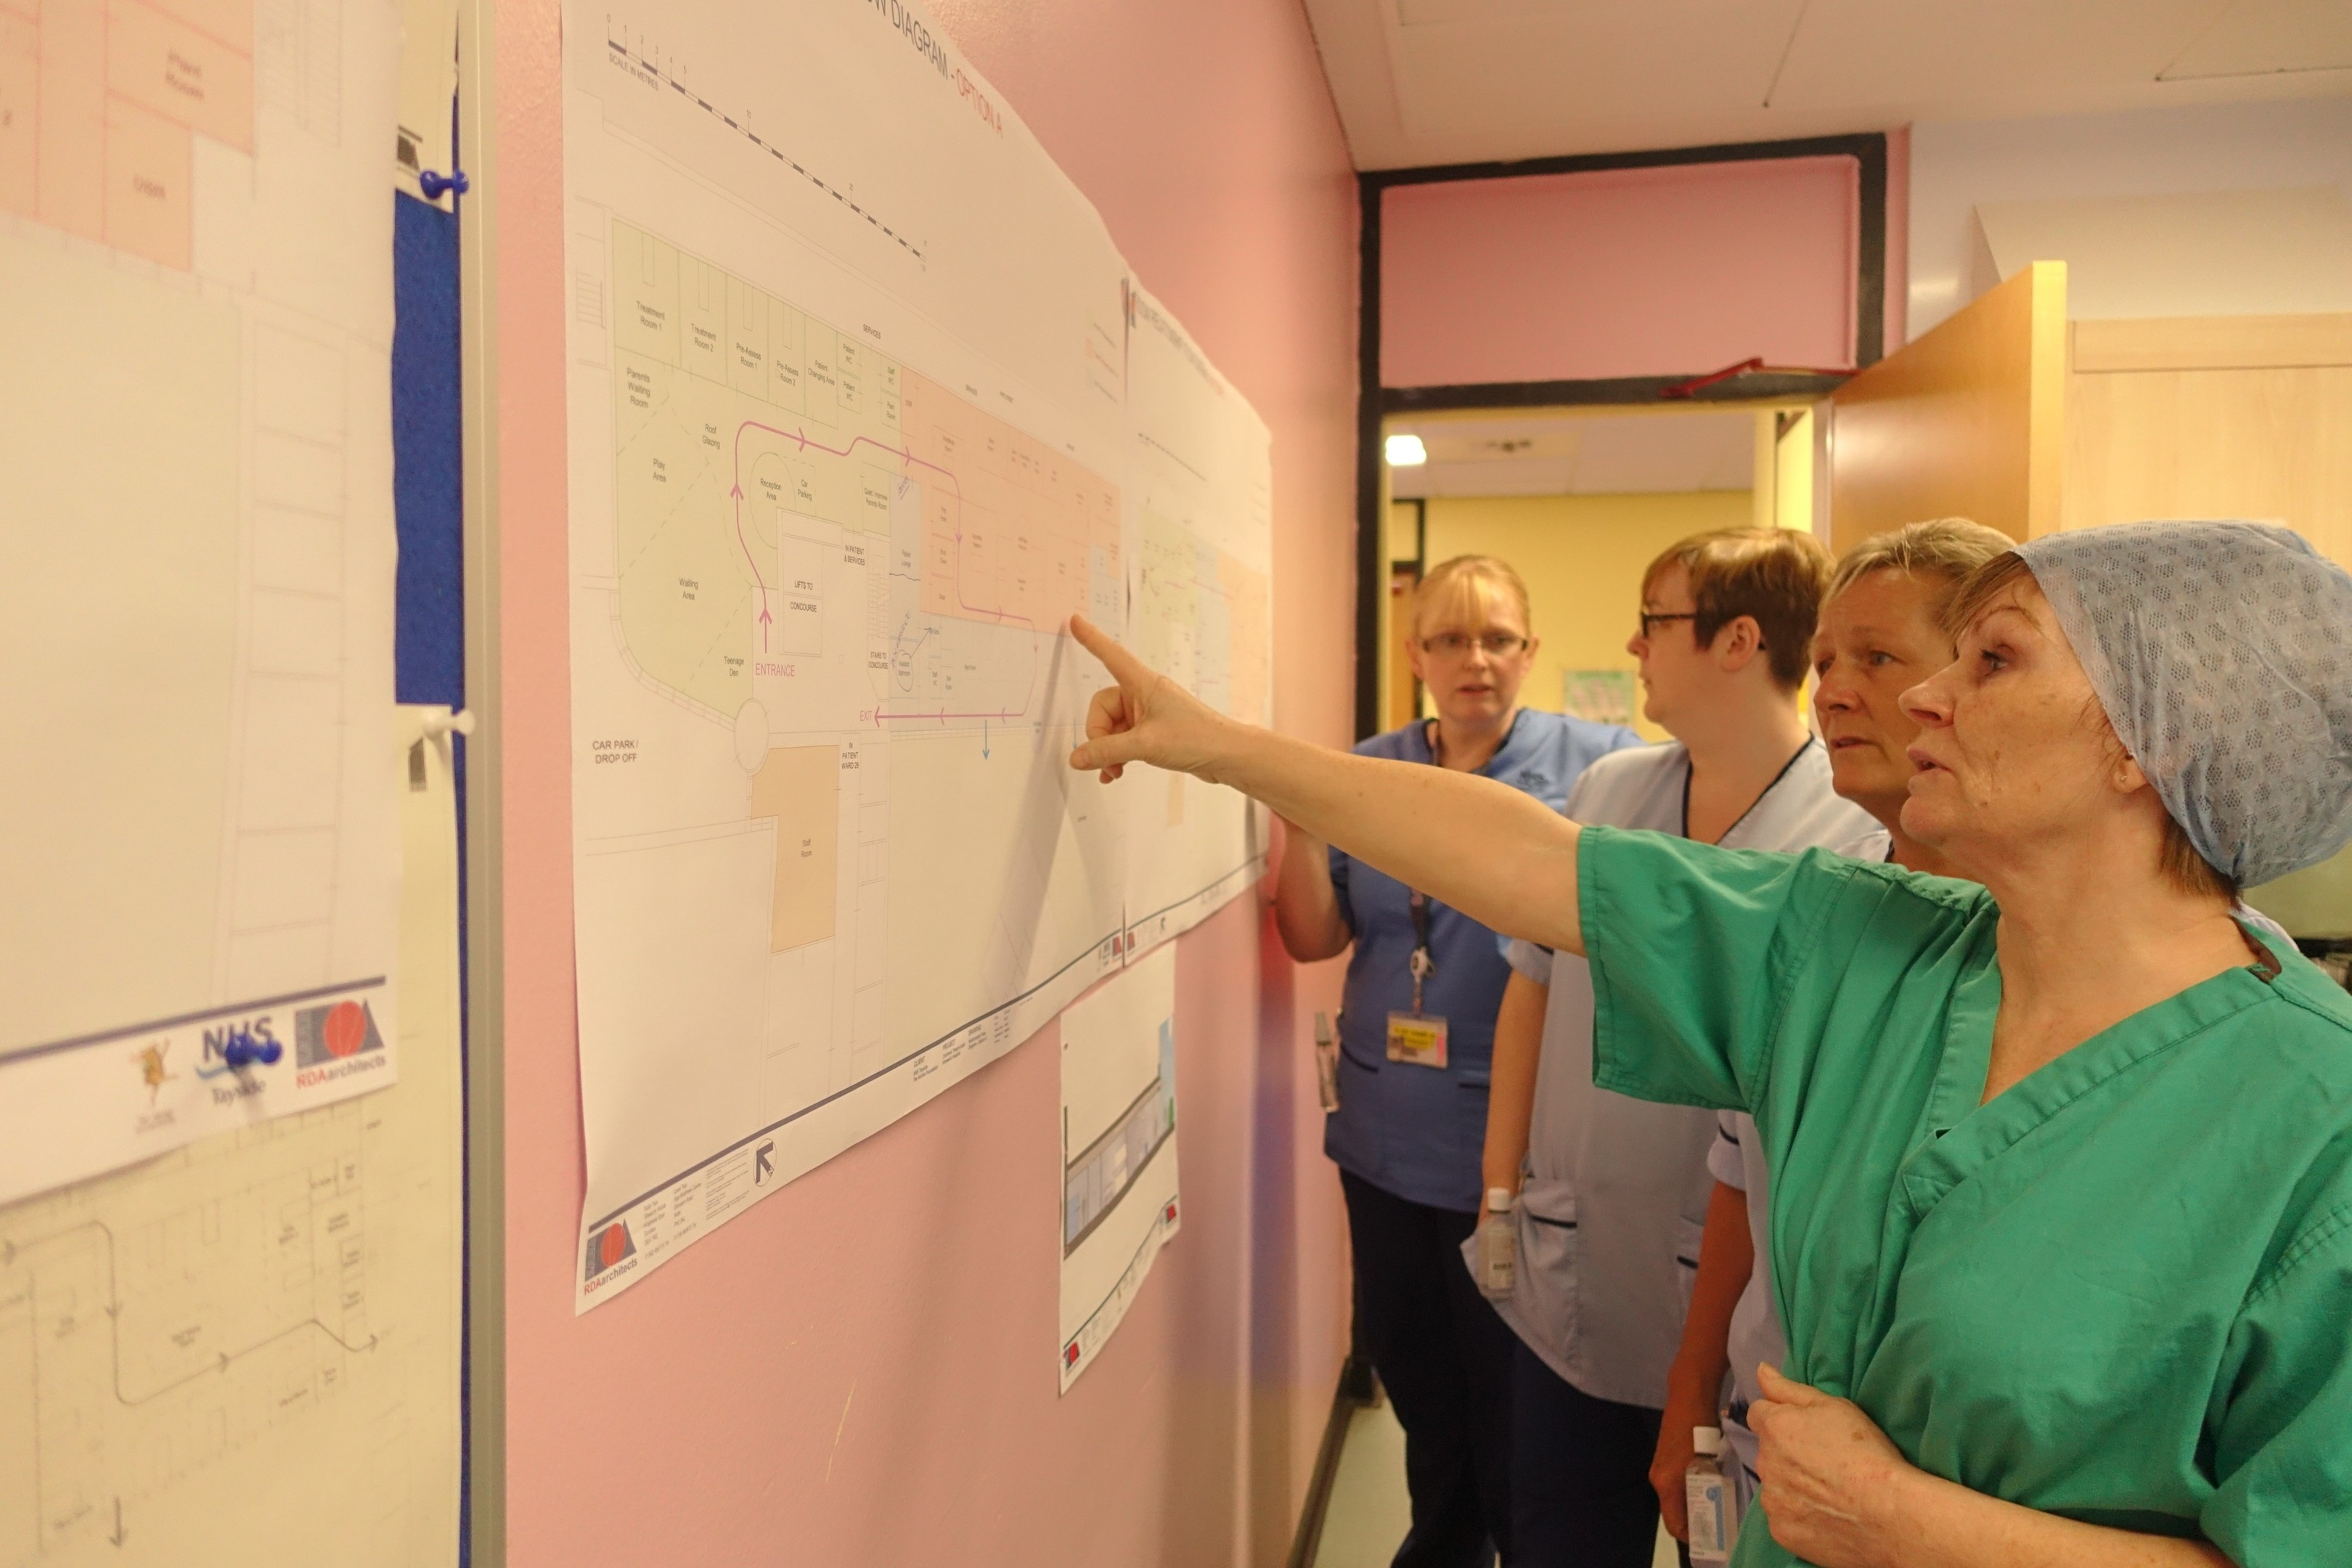 Staff of the children's surgical unit, Ward 30, review the proposals.